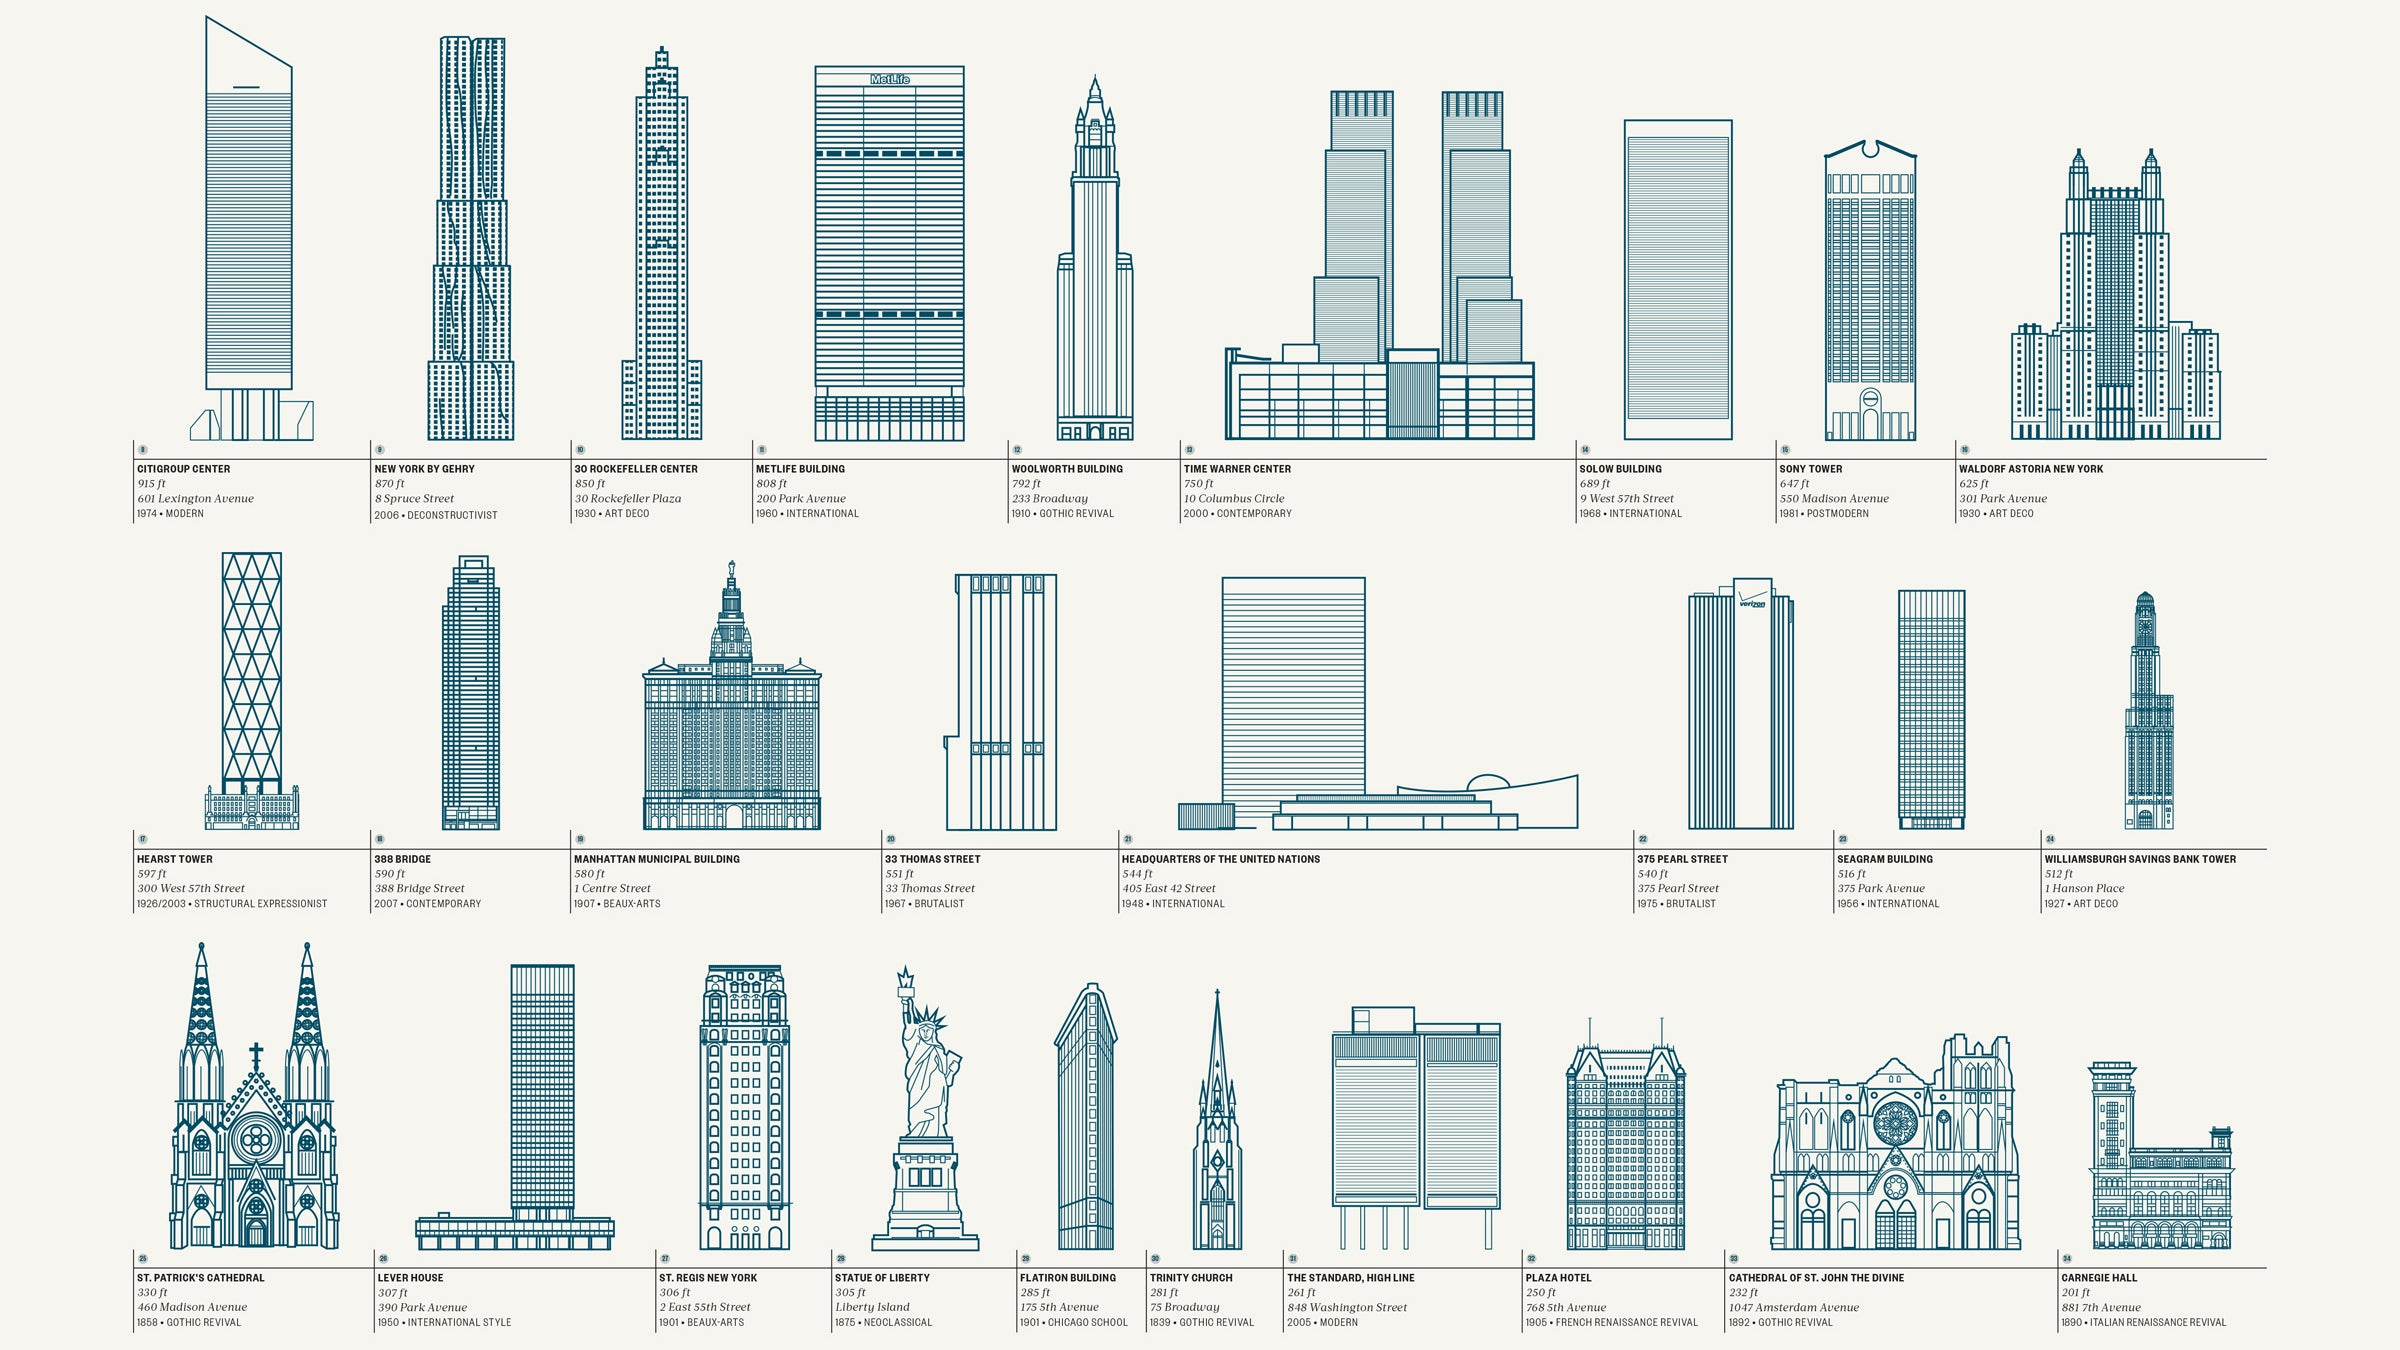 Take A Tour Of New York Citys Best Architecture In One Image